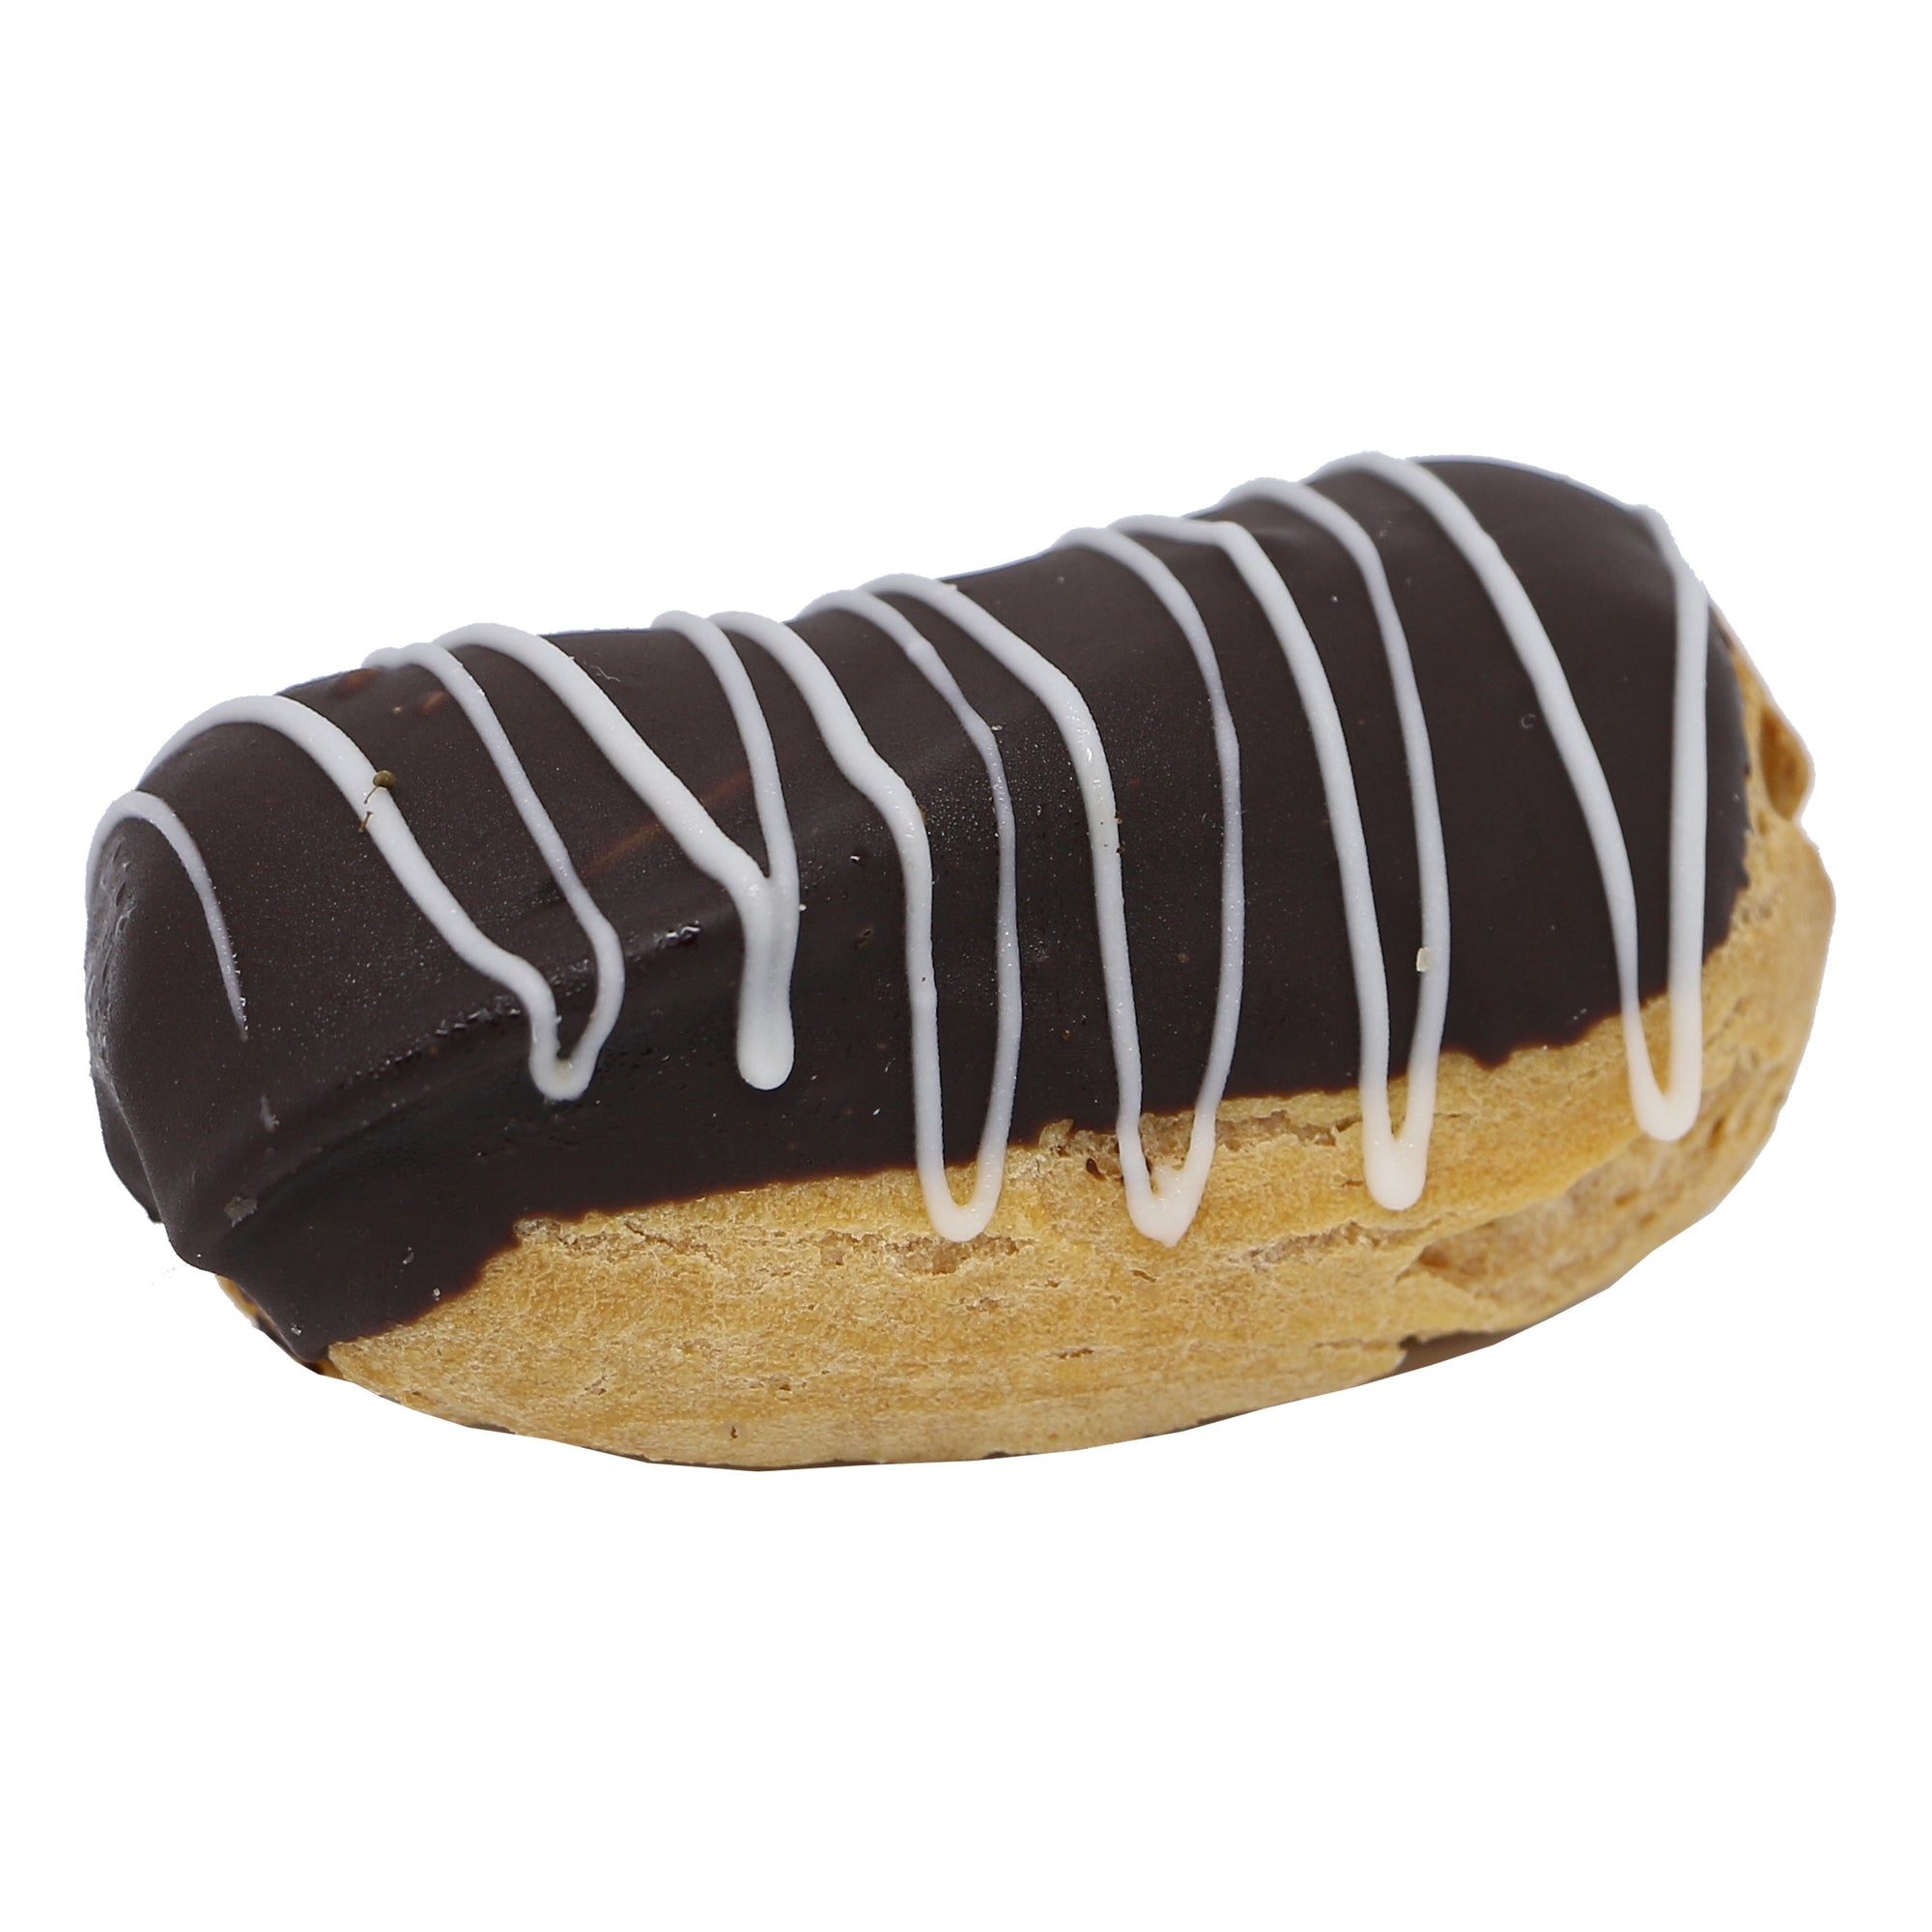 Mini Eclair - Chocolate - Treats2eat - Wedding & Birthday Party Dessert Catering Near Me